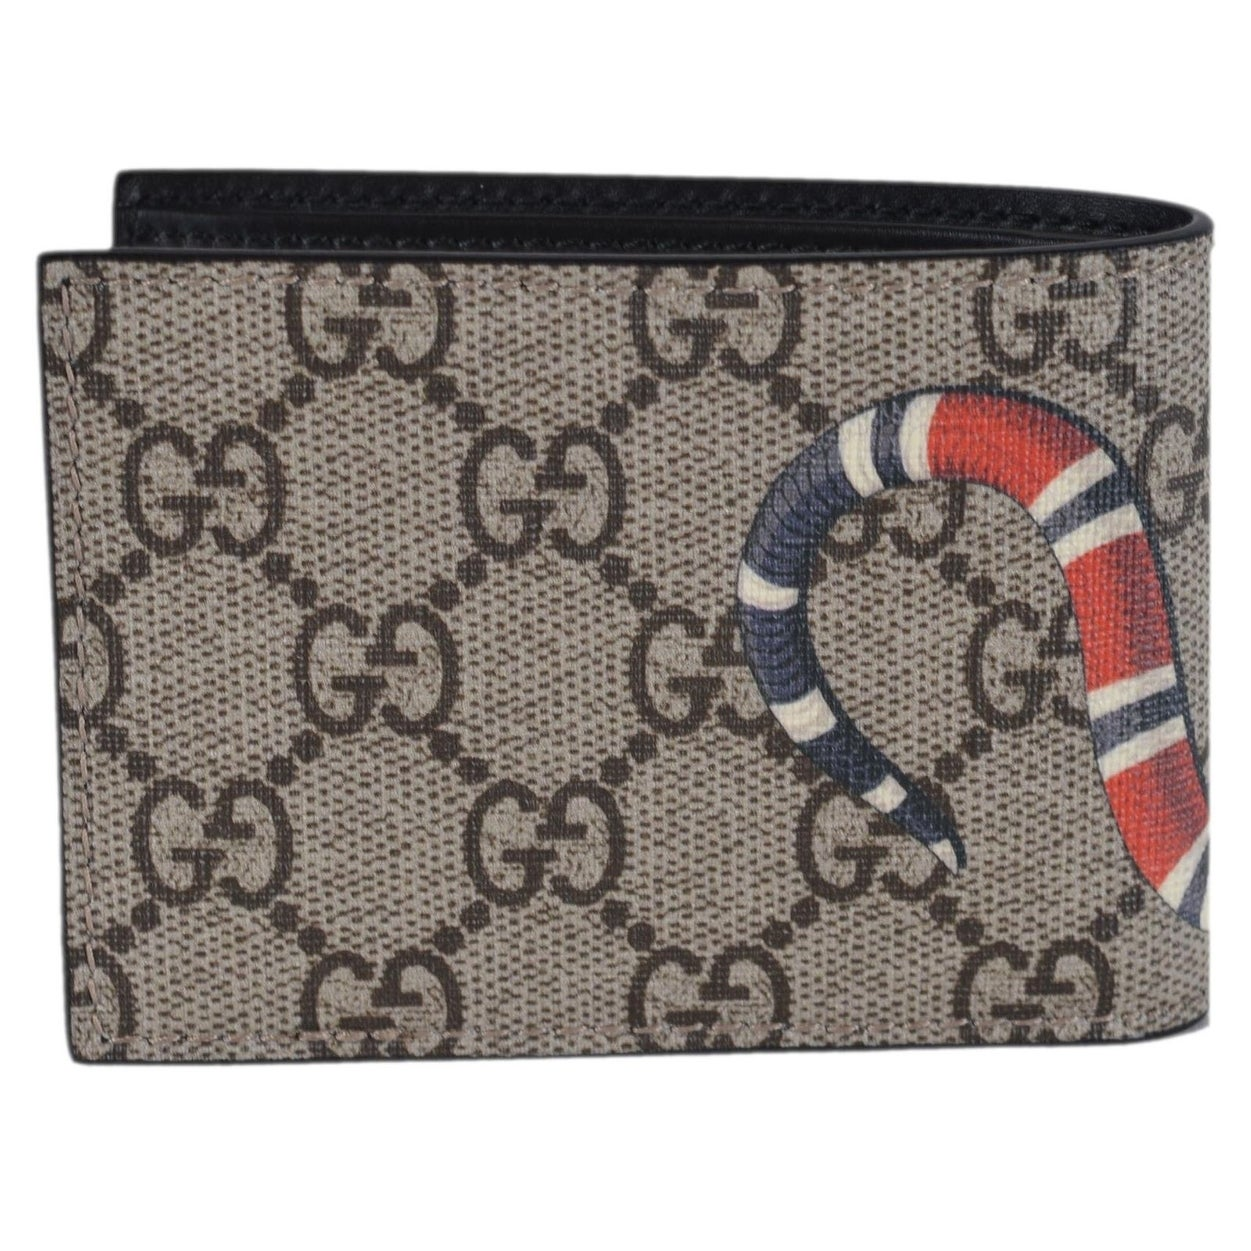 f12b369b98c Shop Gucci Men s Beige GG Supreme Canvas King Snake Small Bifold Wallet -  Free Shipping Today - Overstock - 26433430